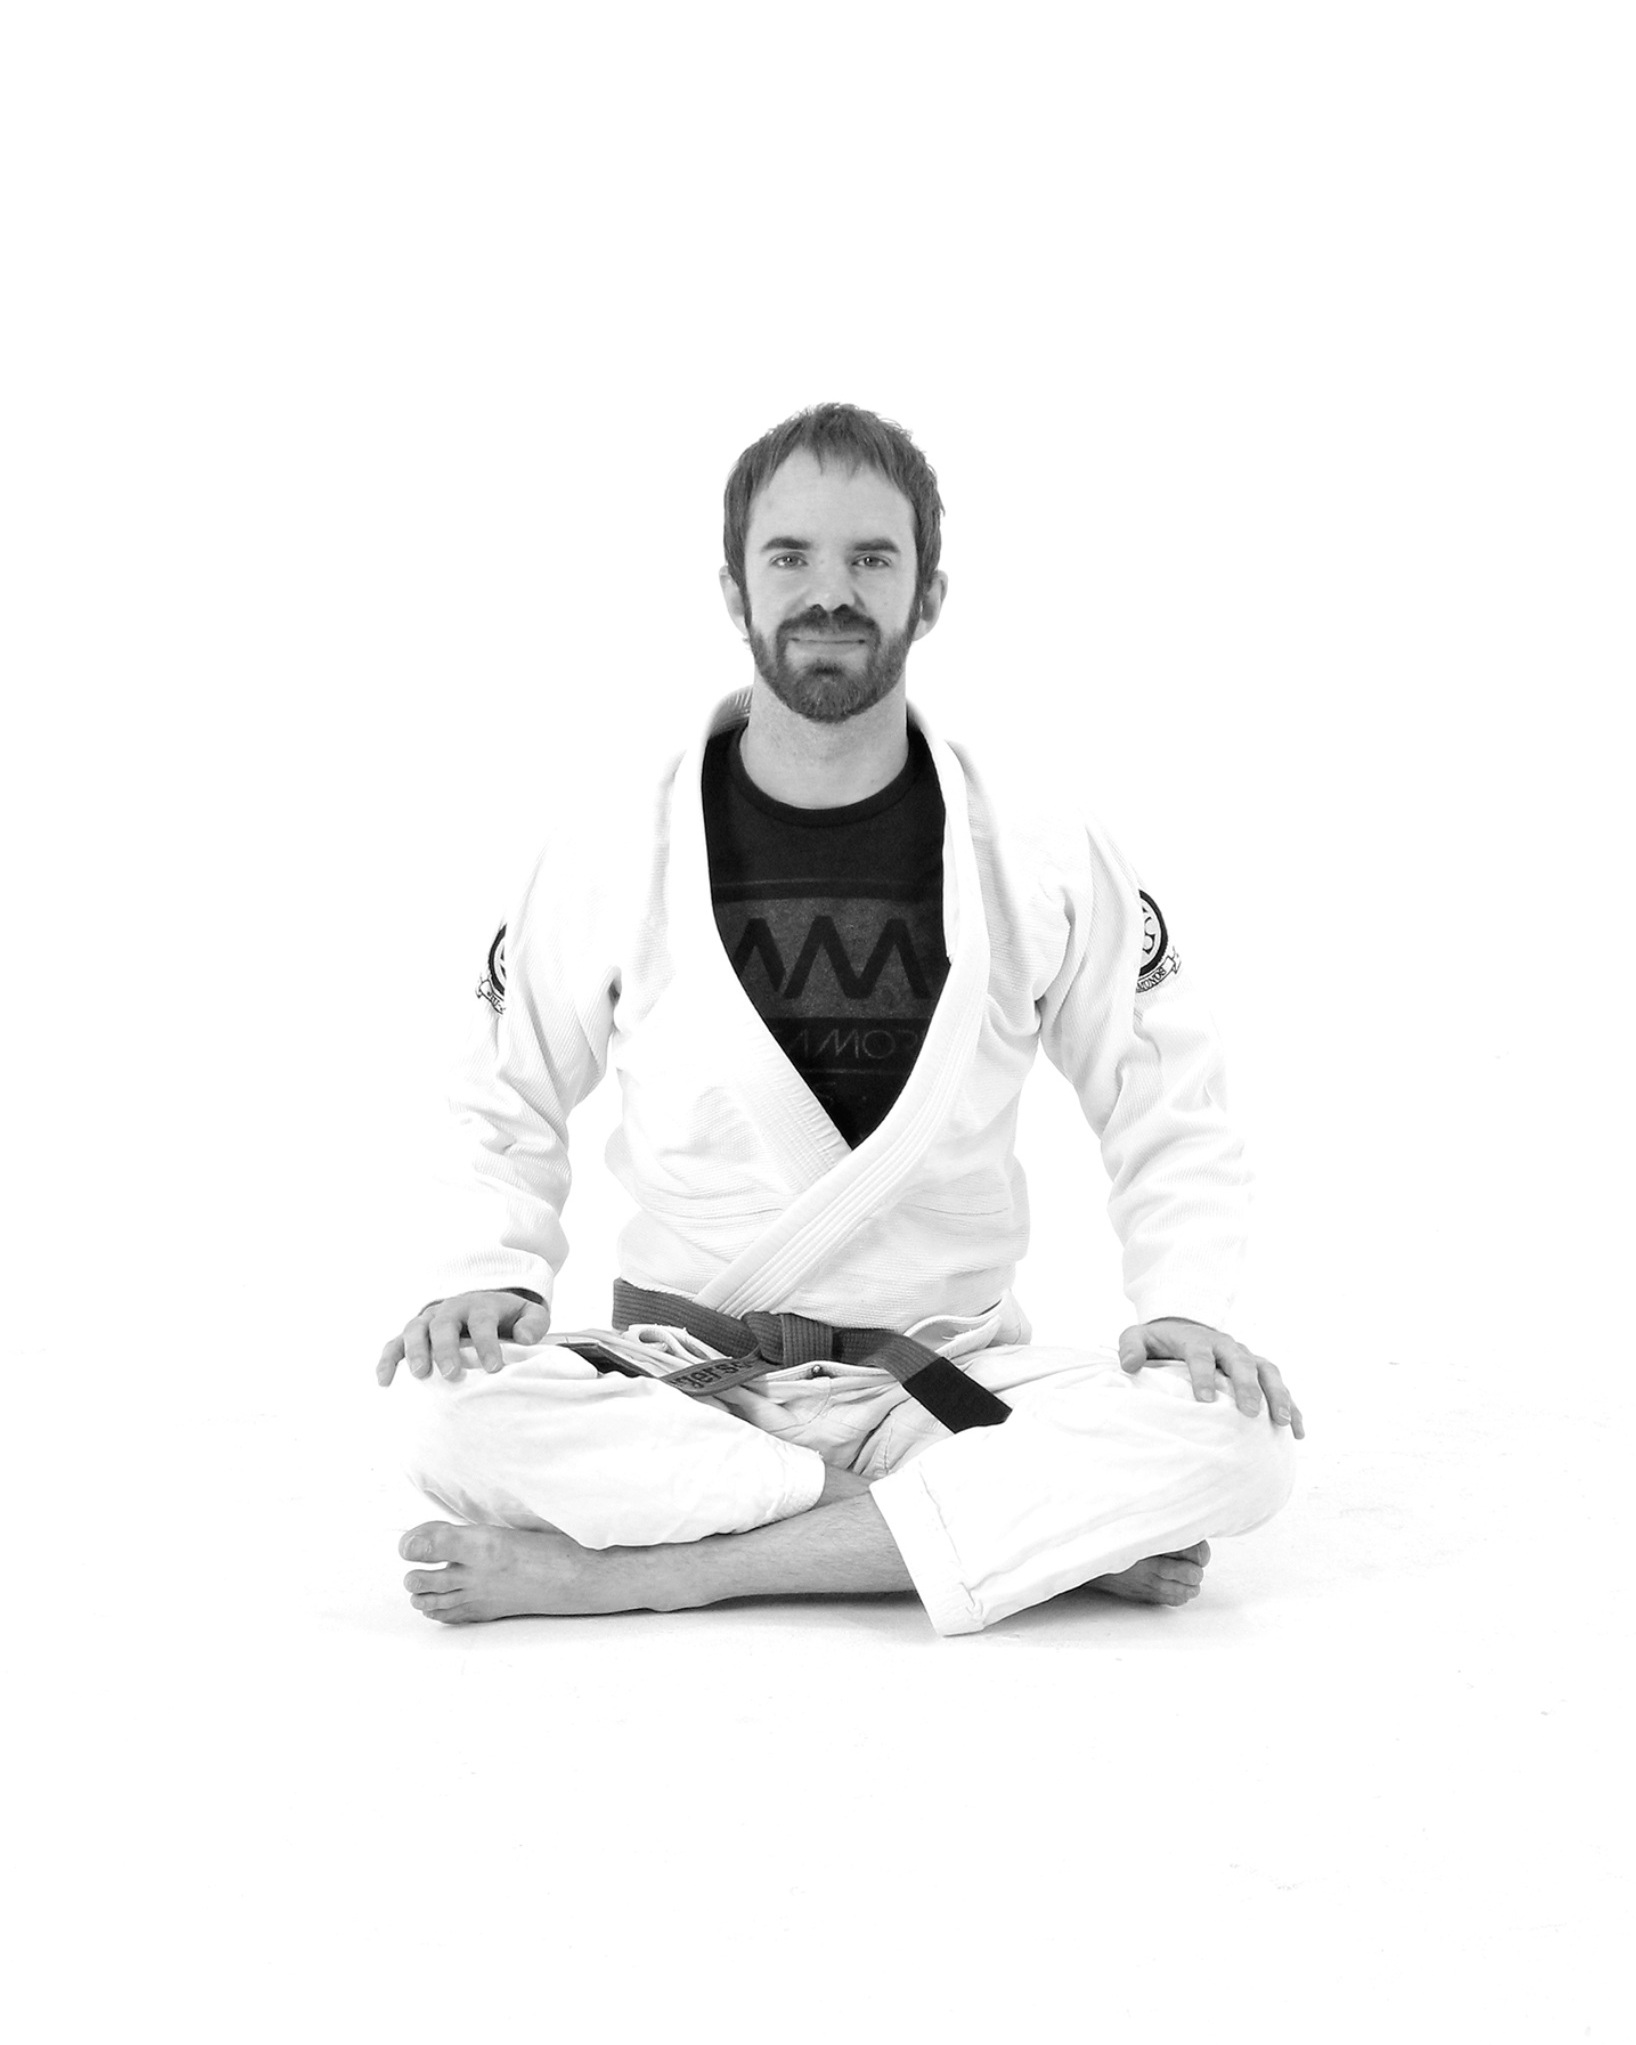 Bryan Gregerson - Bryan Gregerson, co-owner of Clube LA with his wife Nancy, began training Jiu Jitsu in 2001 at the age of 15. By 16, he had earned his blue belt from Rigan Machado and Paulo Guillobel. Bryan left the mats for ten years to concentrate on earning his Bachelor's and Master's degrees at the University of Southern California.After some prodding from his high school students at Mendez High School in Boyle Heights, Bryan returned to training to teach an after school self-defense class. He is now a brown belt and the Fundamentals instructor at Clube Los Angeles.Bryan's beginner-friendly approach to teaching is driven by his understanding of various learning theories he studied while earning his Master of Arts in Teaching (MAT) degree at USC and by his eight years' experience teaching Social Studies in the Los Angeles and Boyle Heights. Bryan is (almost!) fluent in Spanish.